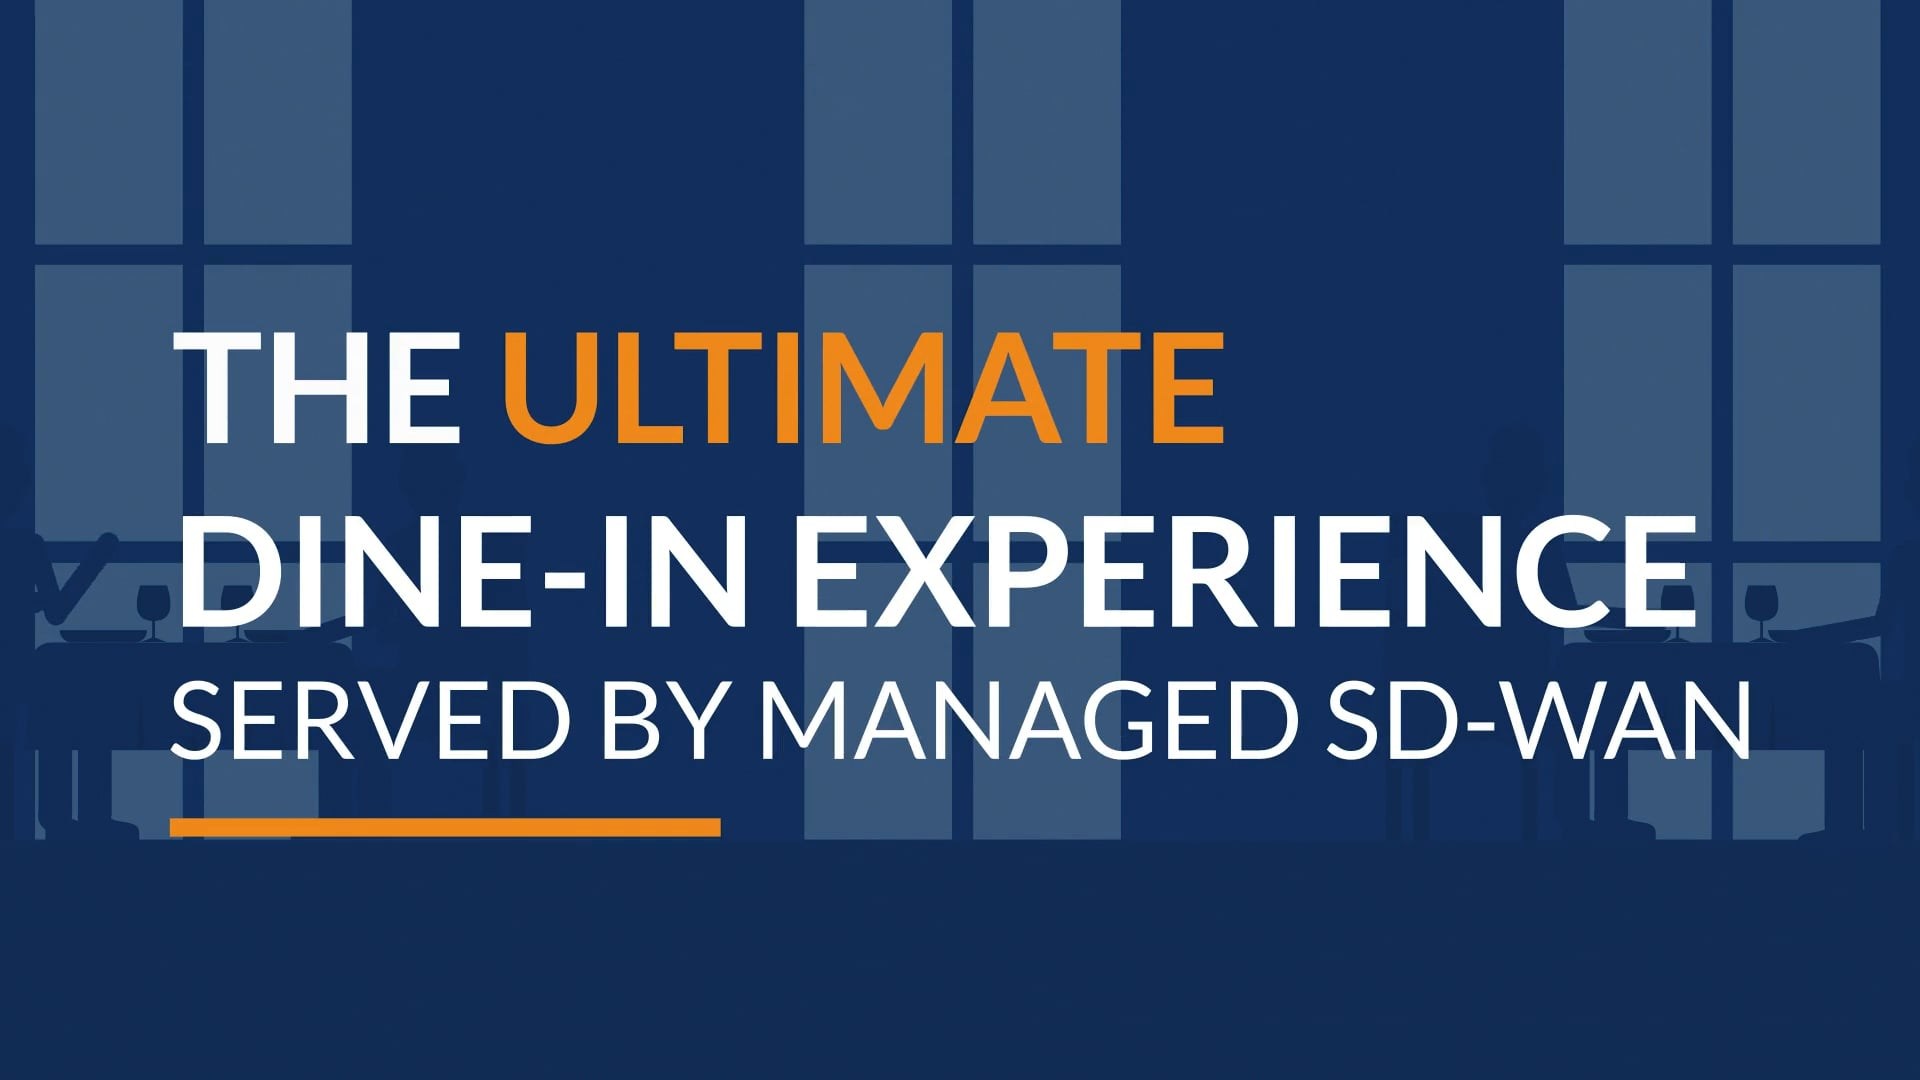 The Ultimate Dine-In Experience: Served by Managed SD-WAN